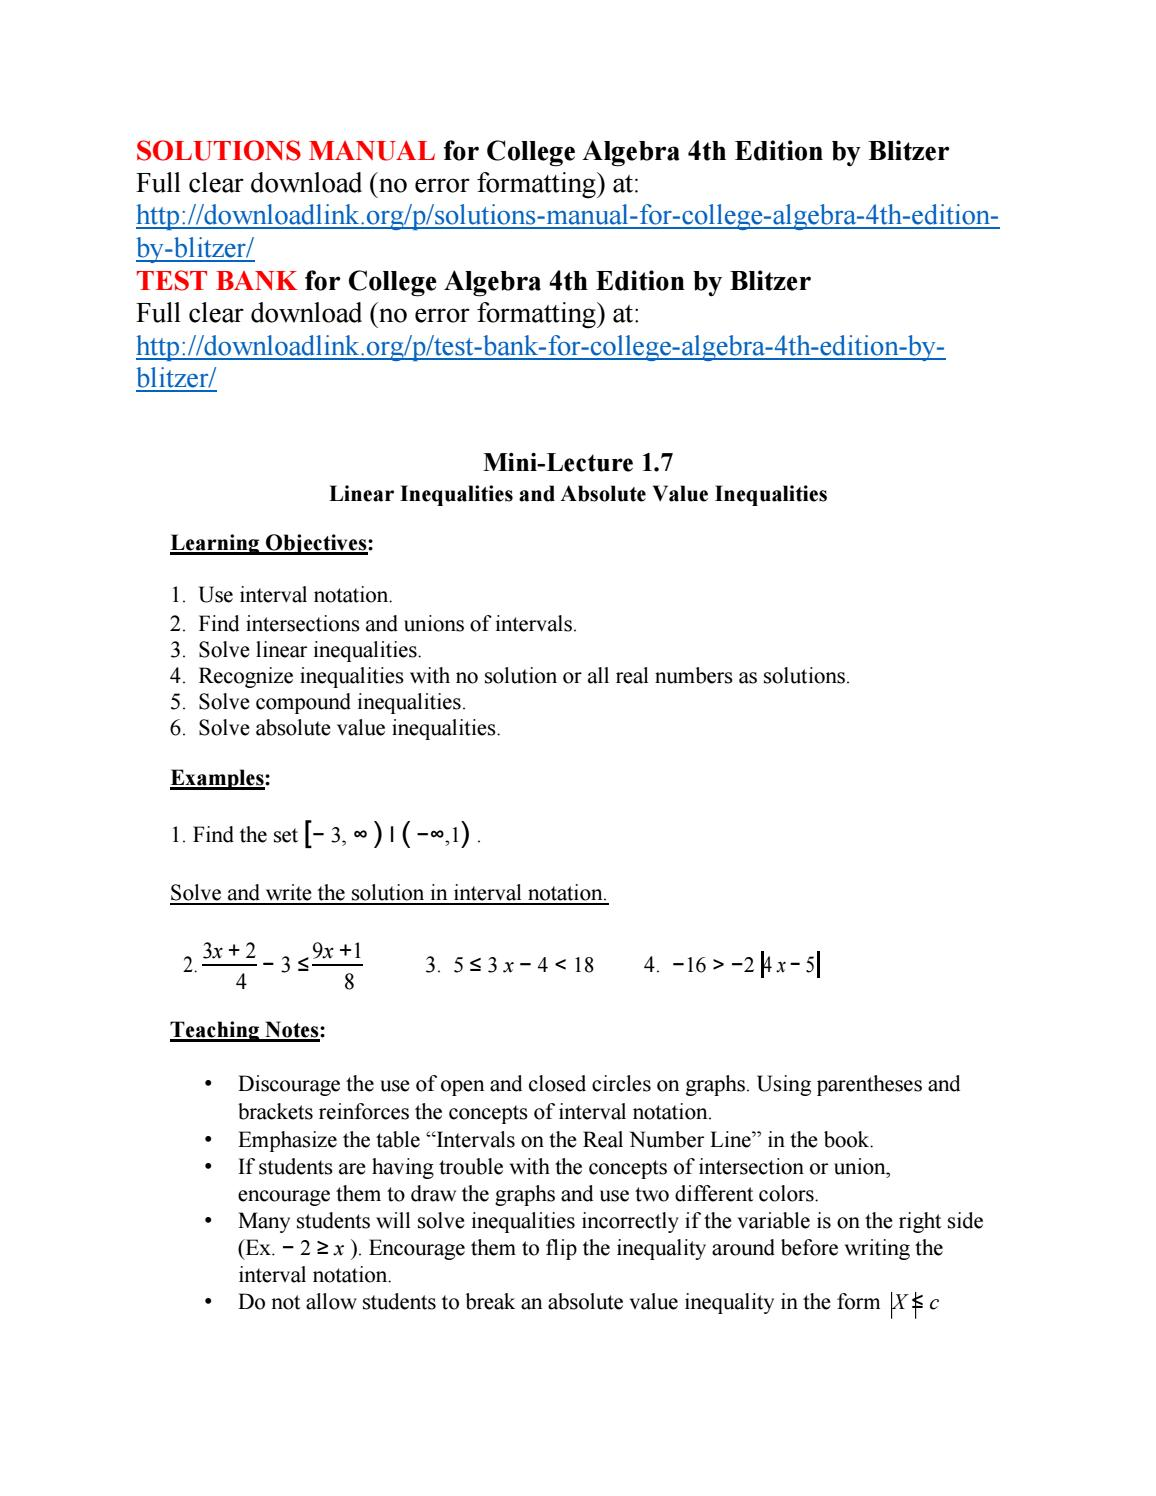 Solutions Manual for College Algebra 4th Edition by Blitzer by  KrisWu3456789 - issuu